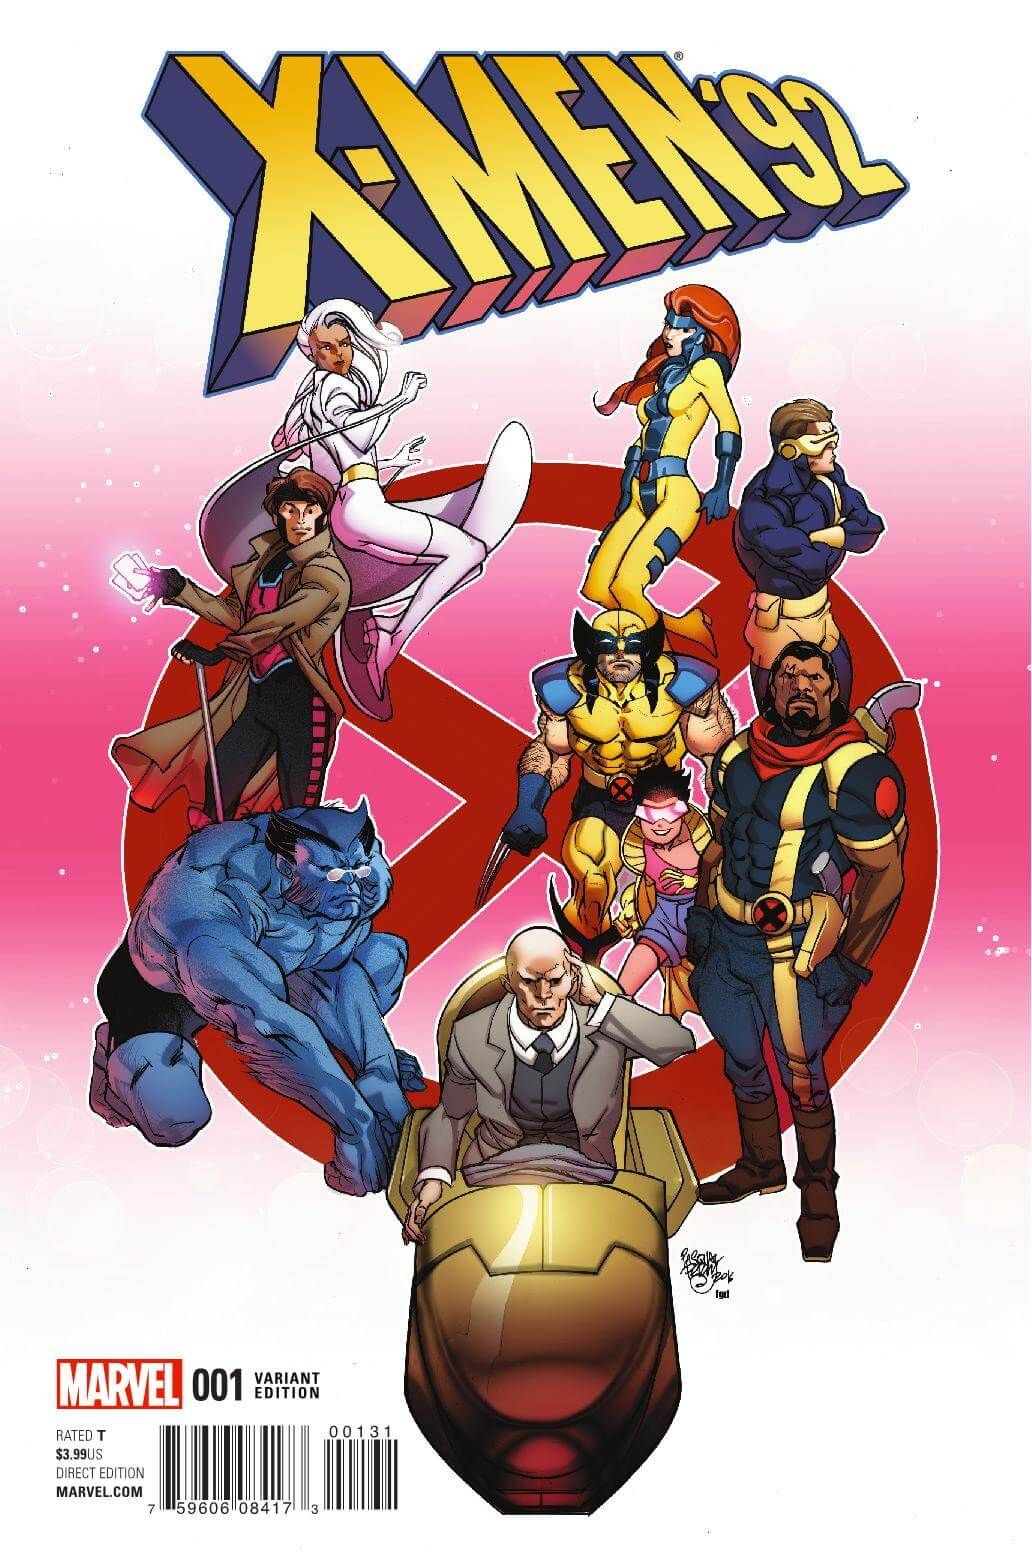 Preview X Men 92 1 All Comic Com X Men Comics Chris Sims